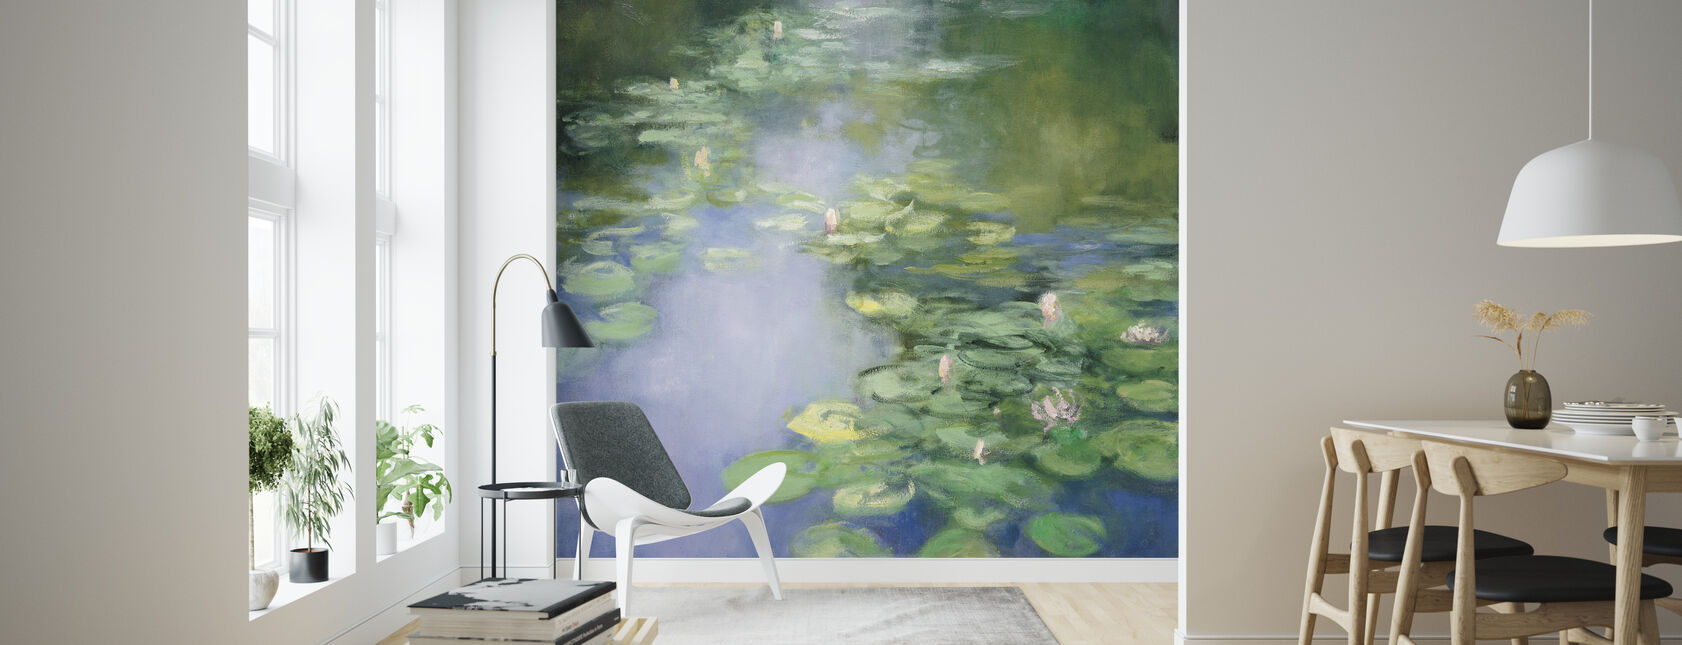 Blue Lily II - Wallpaper - Living Room